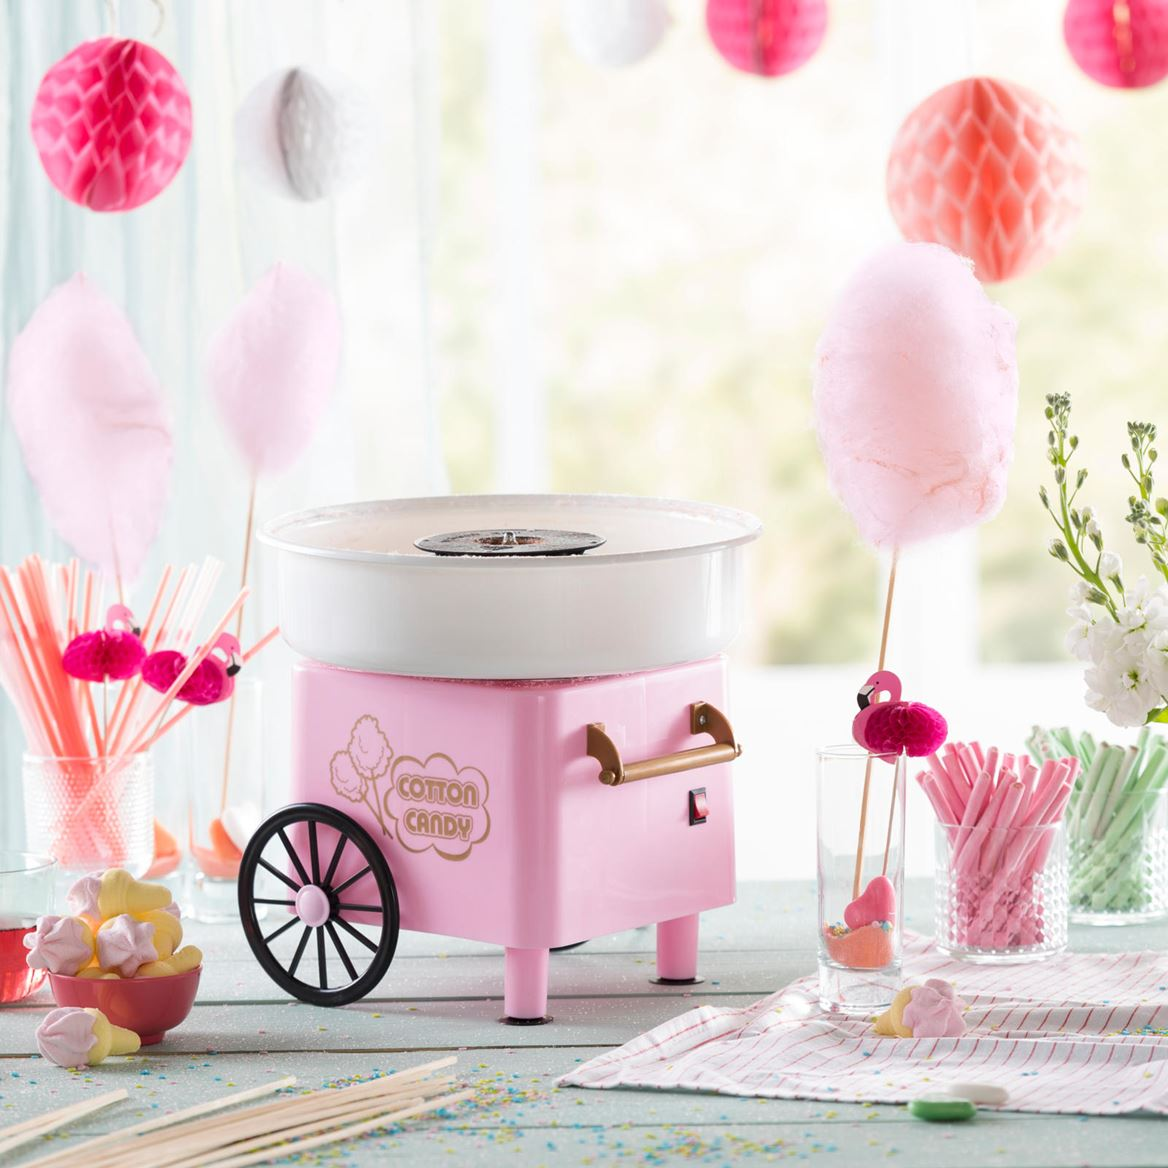 COTTON CANDY Machine barbe à papa rose H 28,5 cm; Ø 29 cm_cotton-candy-machine-barbe-à-papa-rose-h-28,5-cm;-ø-29-cm